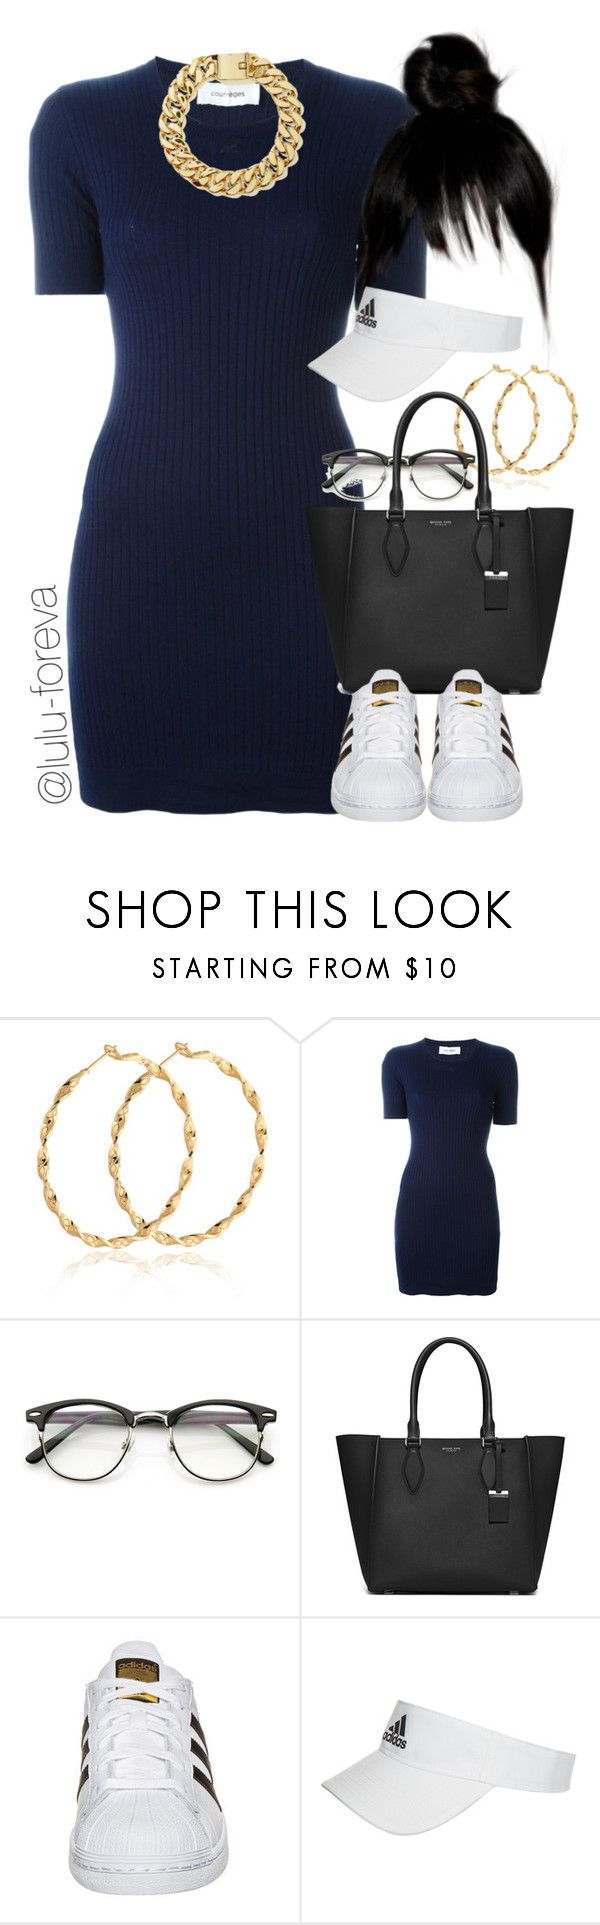 """Untitled #1612"" by lulu-foreva ❤ liked on Polyvore featuring Courrèges, Michael Kors, adidas Originals and adidas"